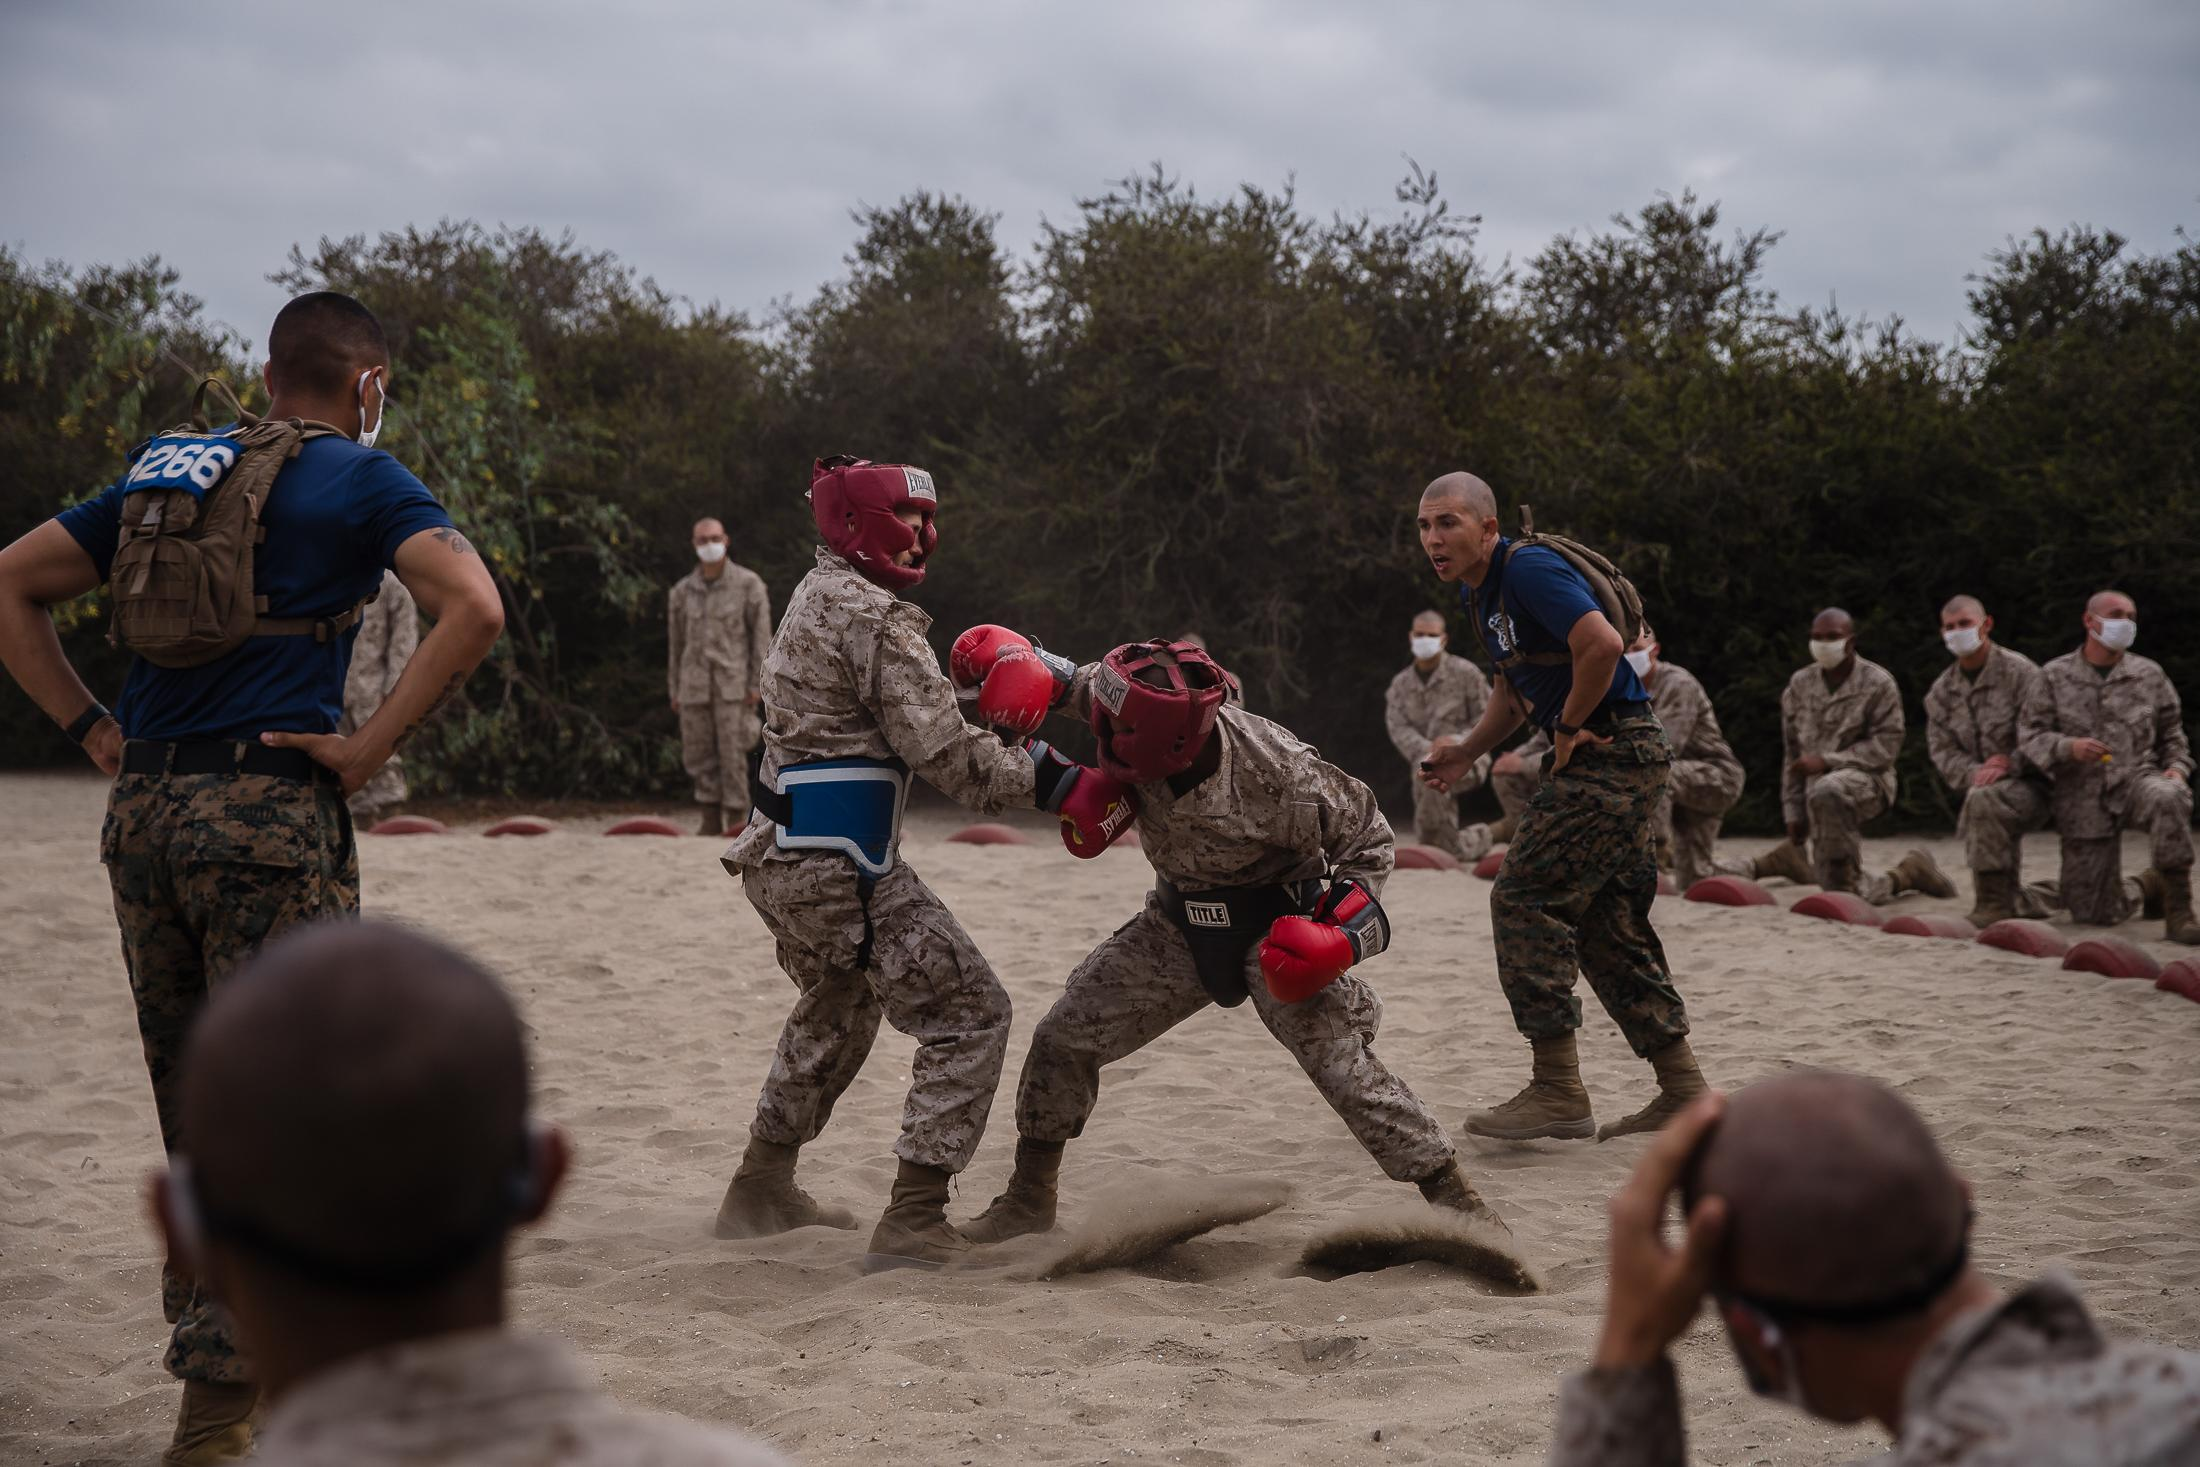 Men spar on the sand at the Marine Corps Recruit Depot San Diego, while the other recruits watch wearing face masks due to Cover-19.